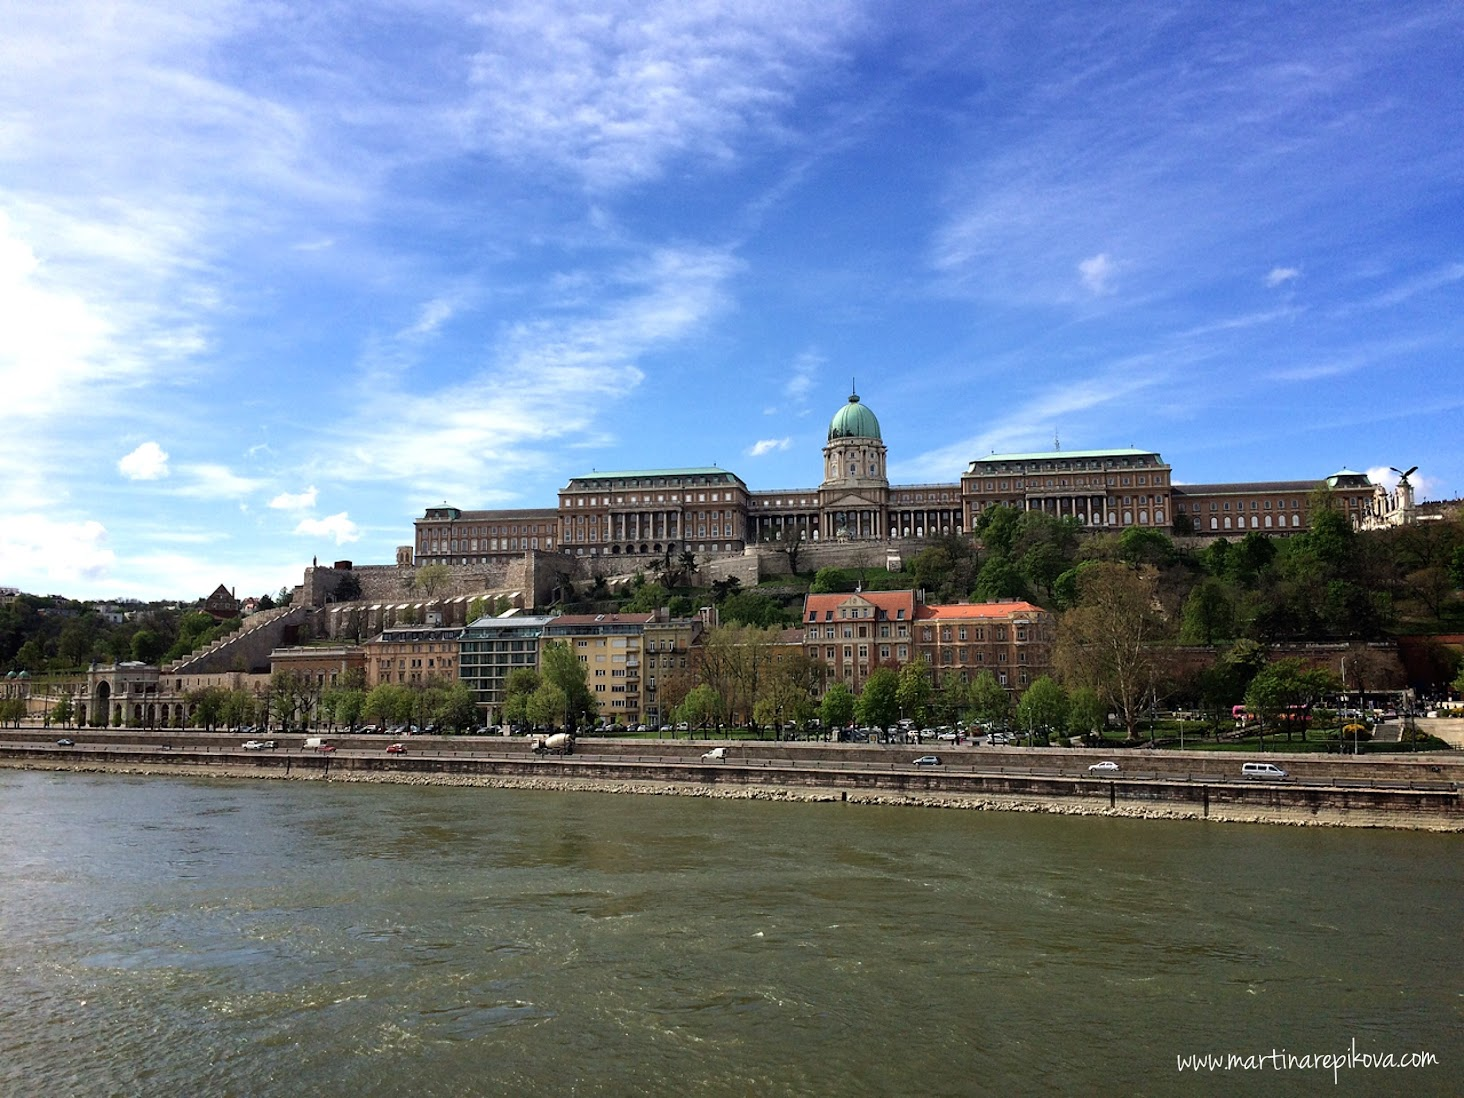 Buda with the Royal palace